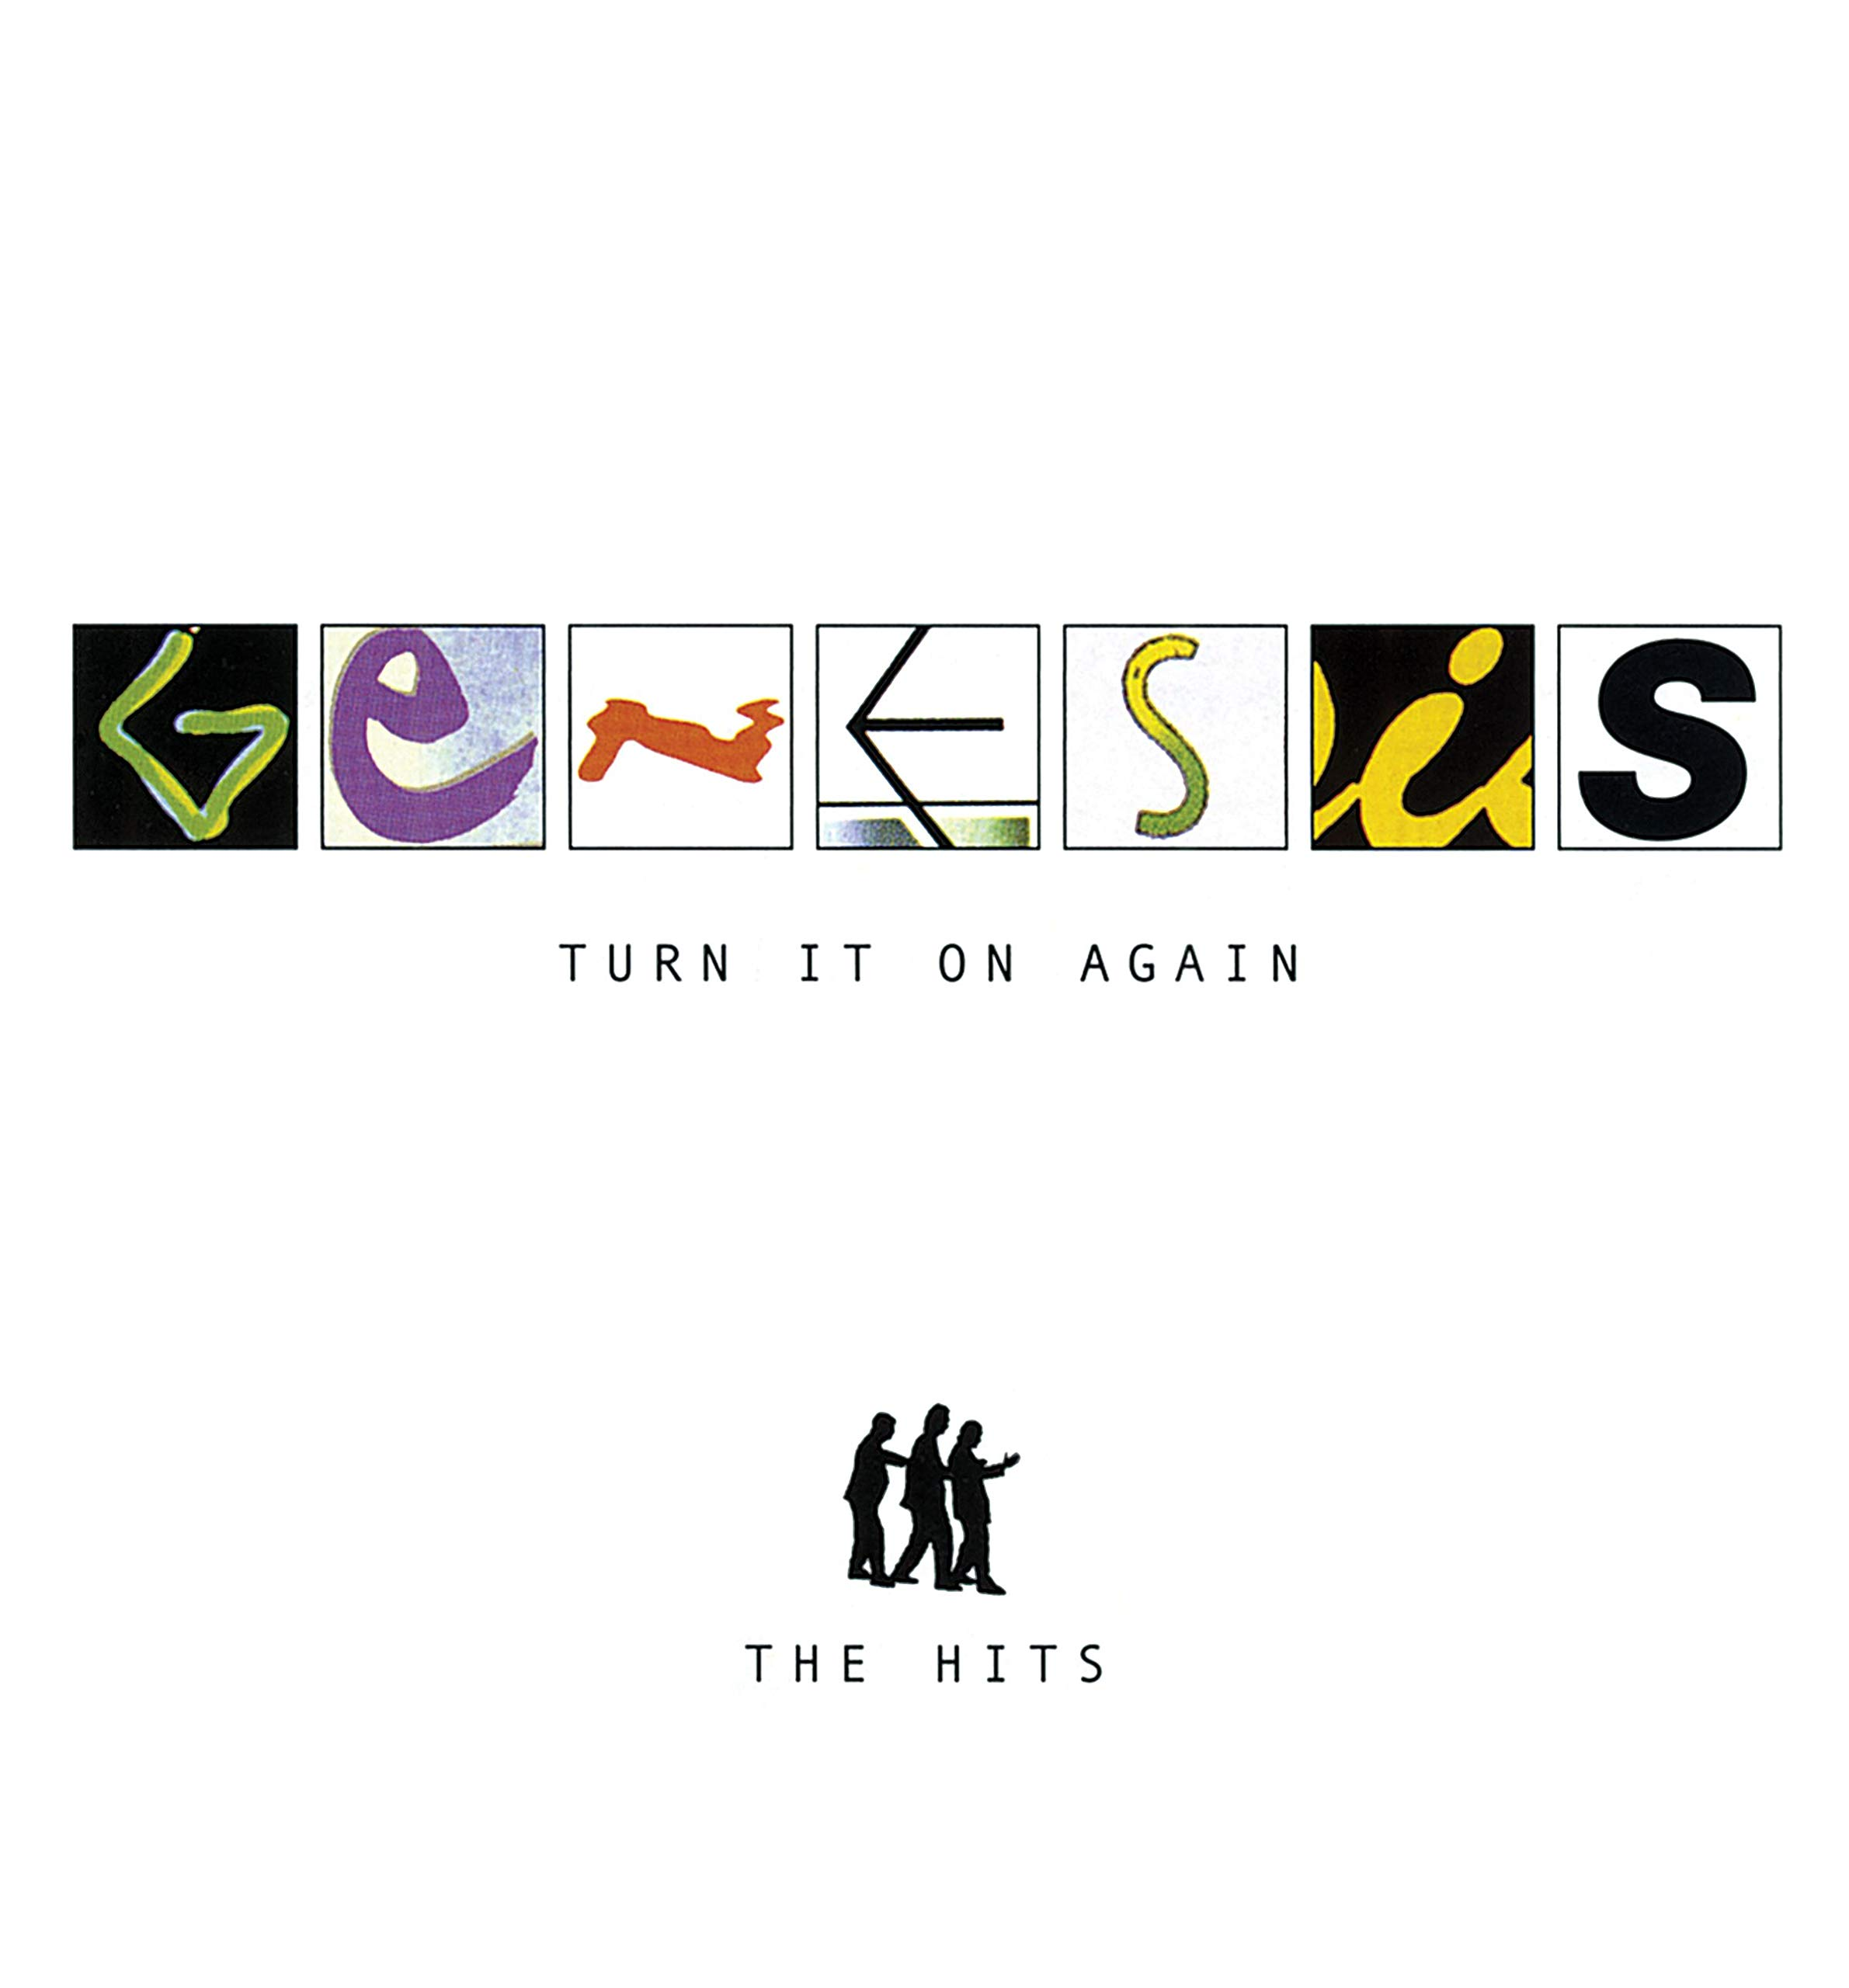 Turn It On Again - The Hits by GENESIS